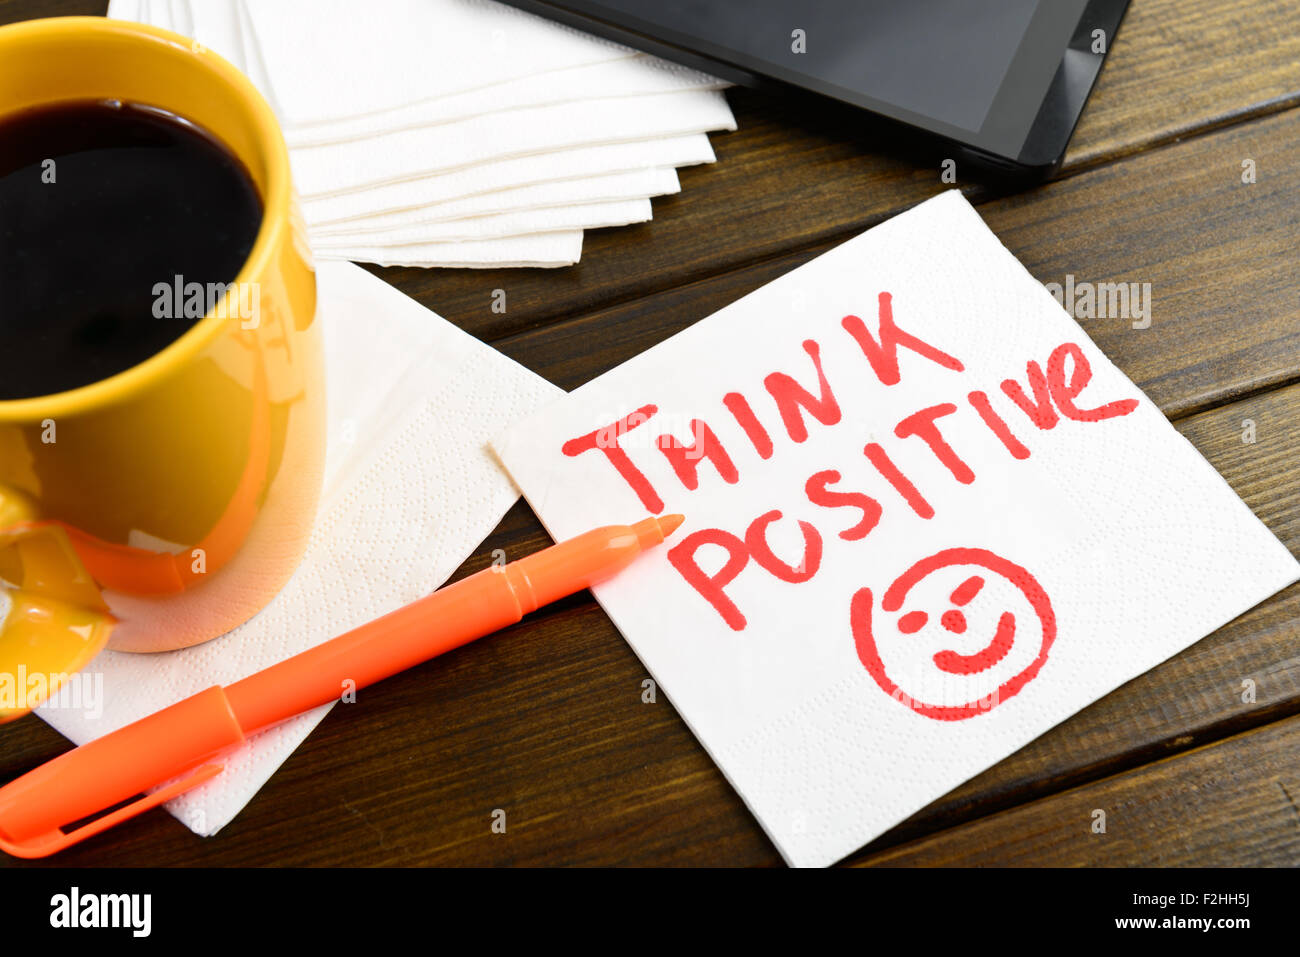 Think positive writing on white napkin around coffee pen and phone on wooden table - Stock Image